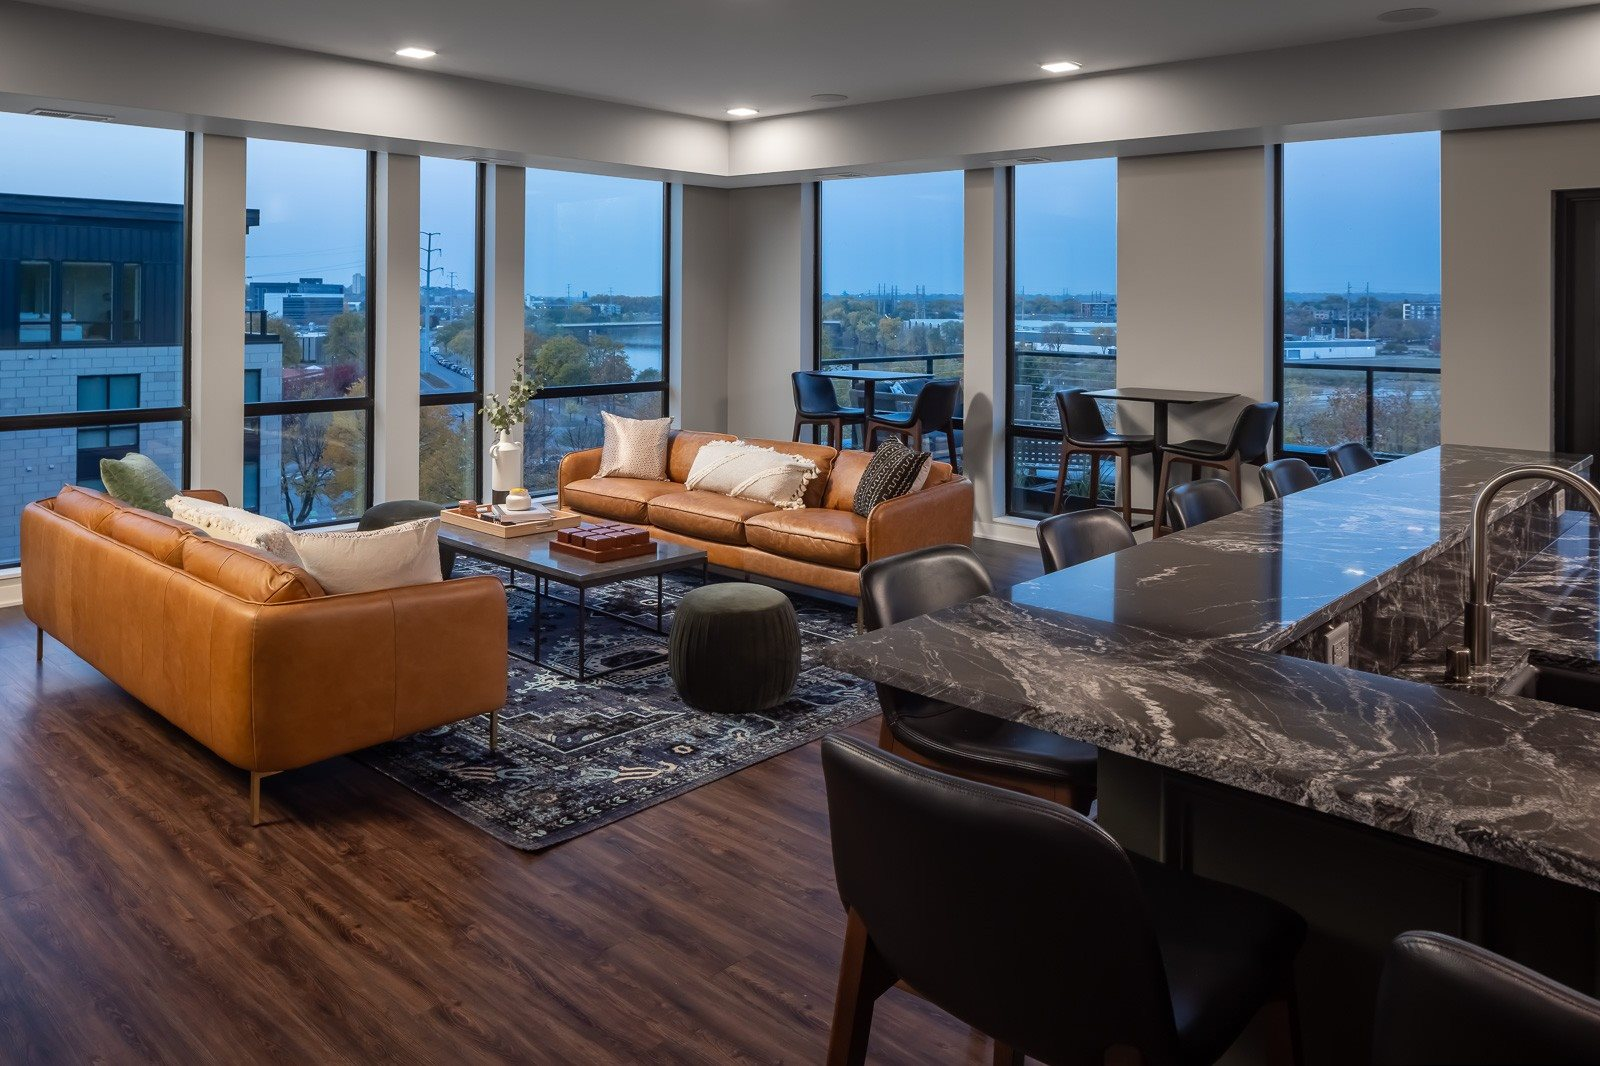 Rooftop Lounge overlooking Mississippi River in the evening